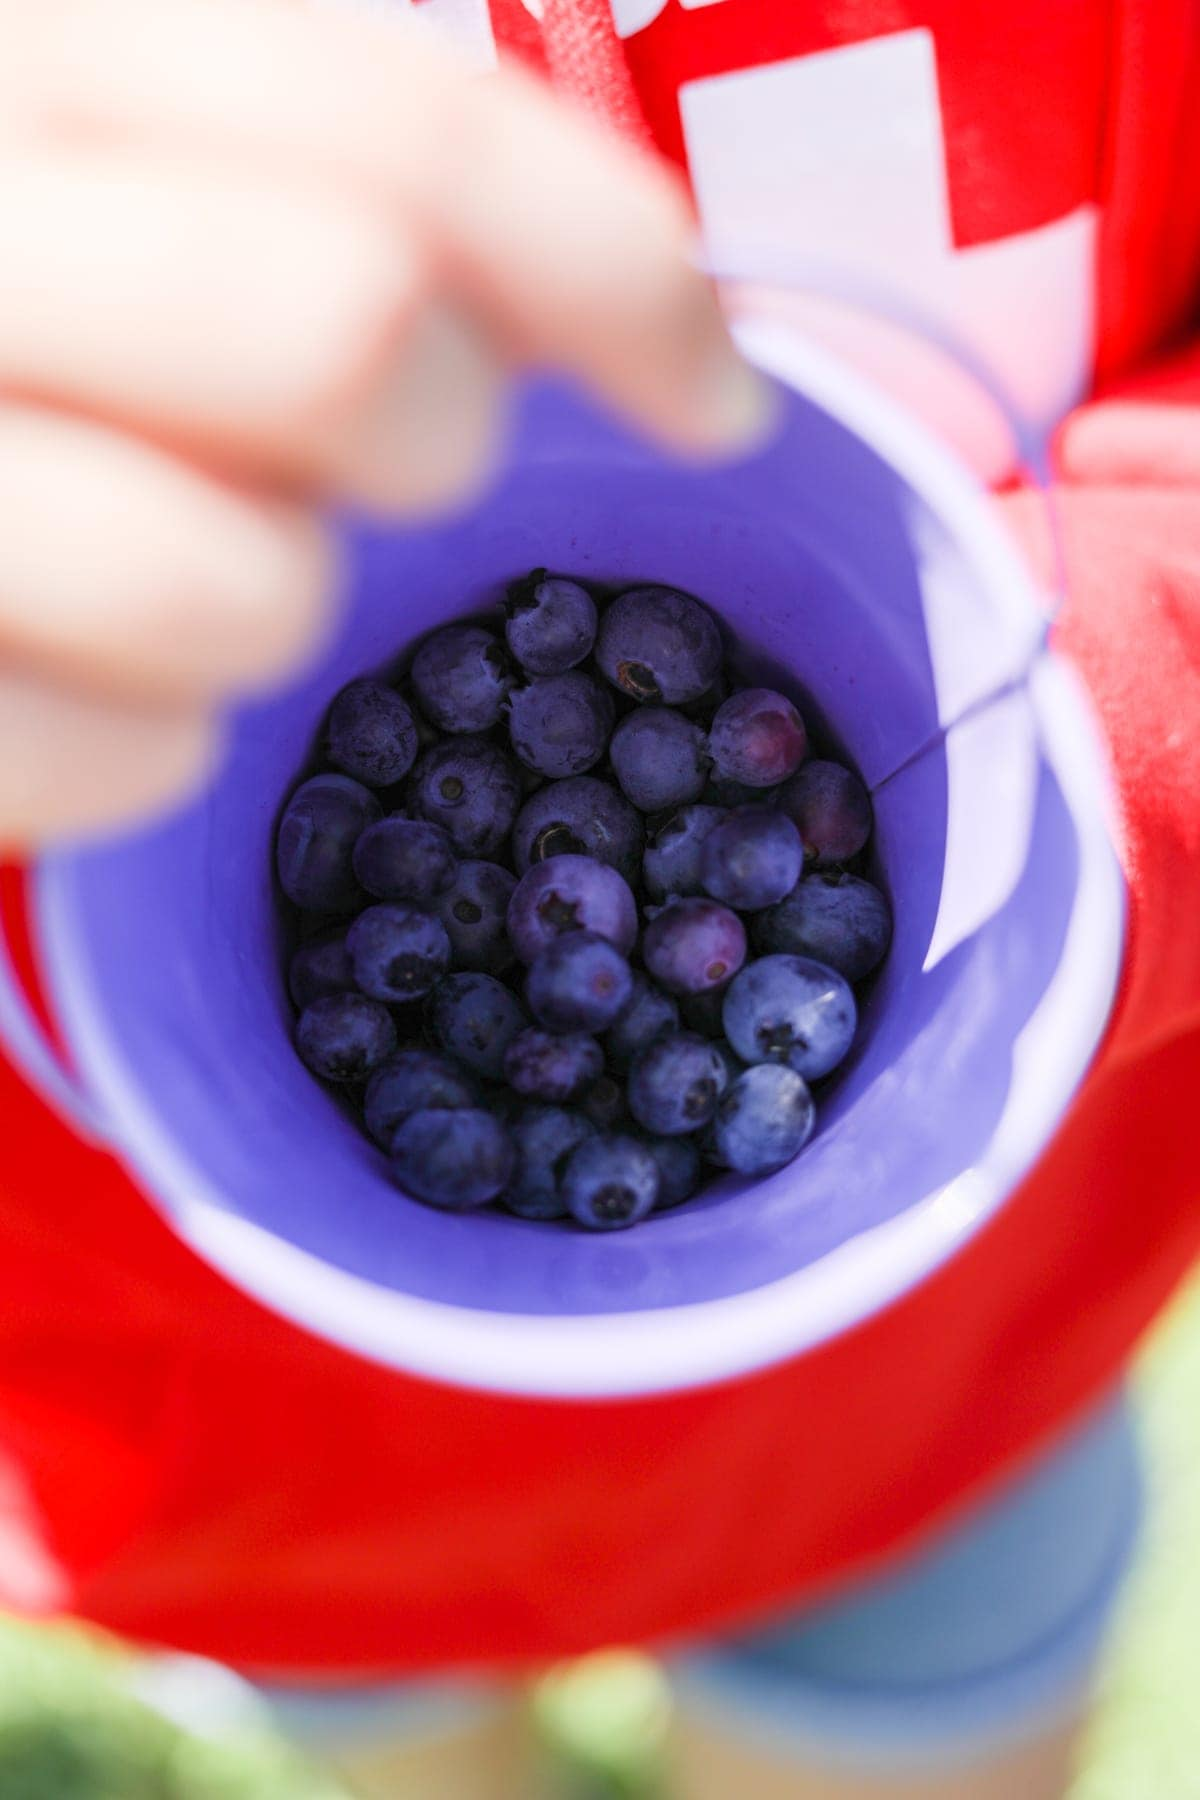 A close up of a bucket of blueberries